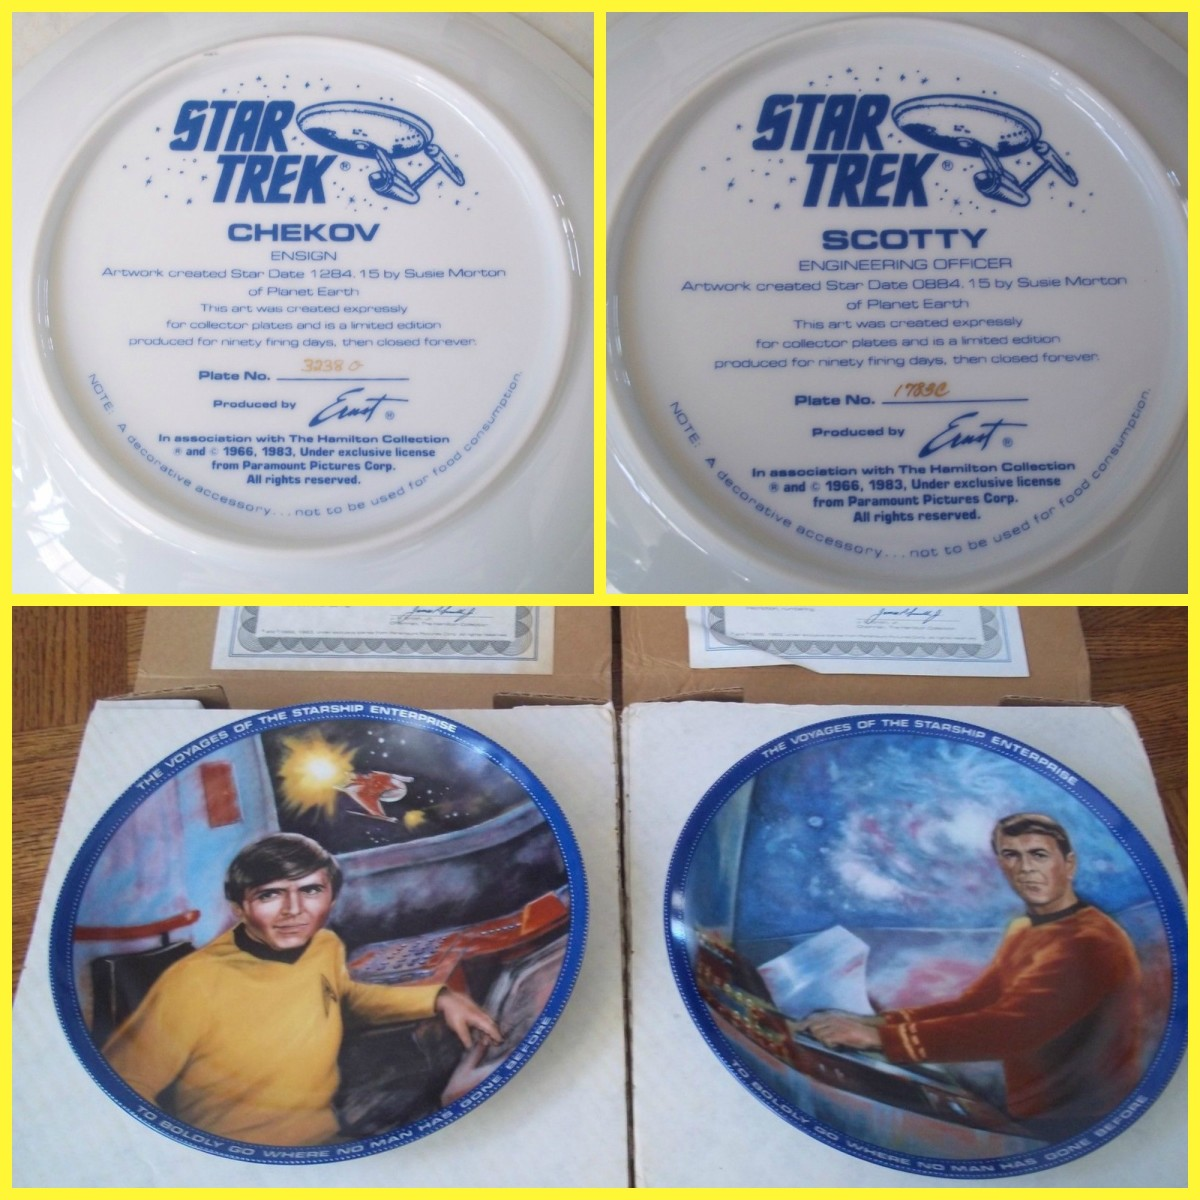 collecting-star-trek-limited-edition-collector-plates